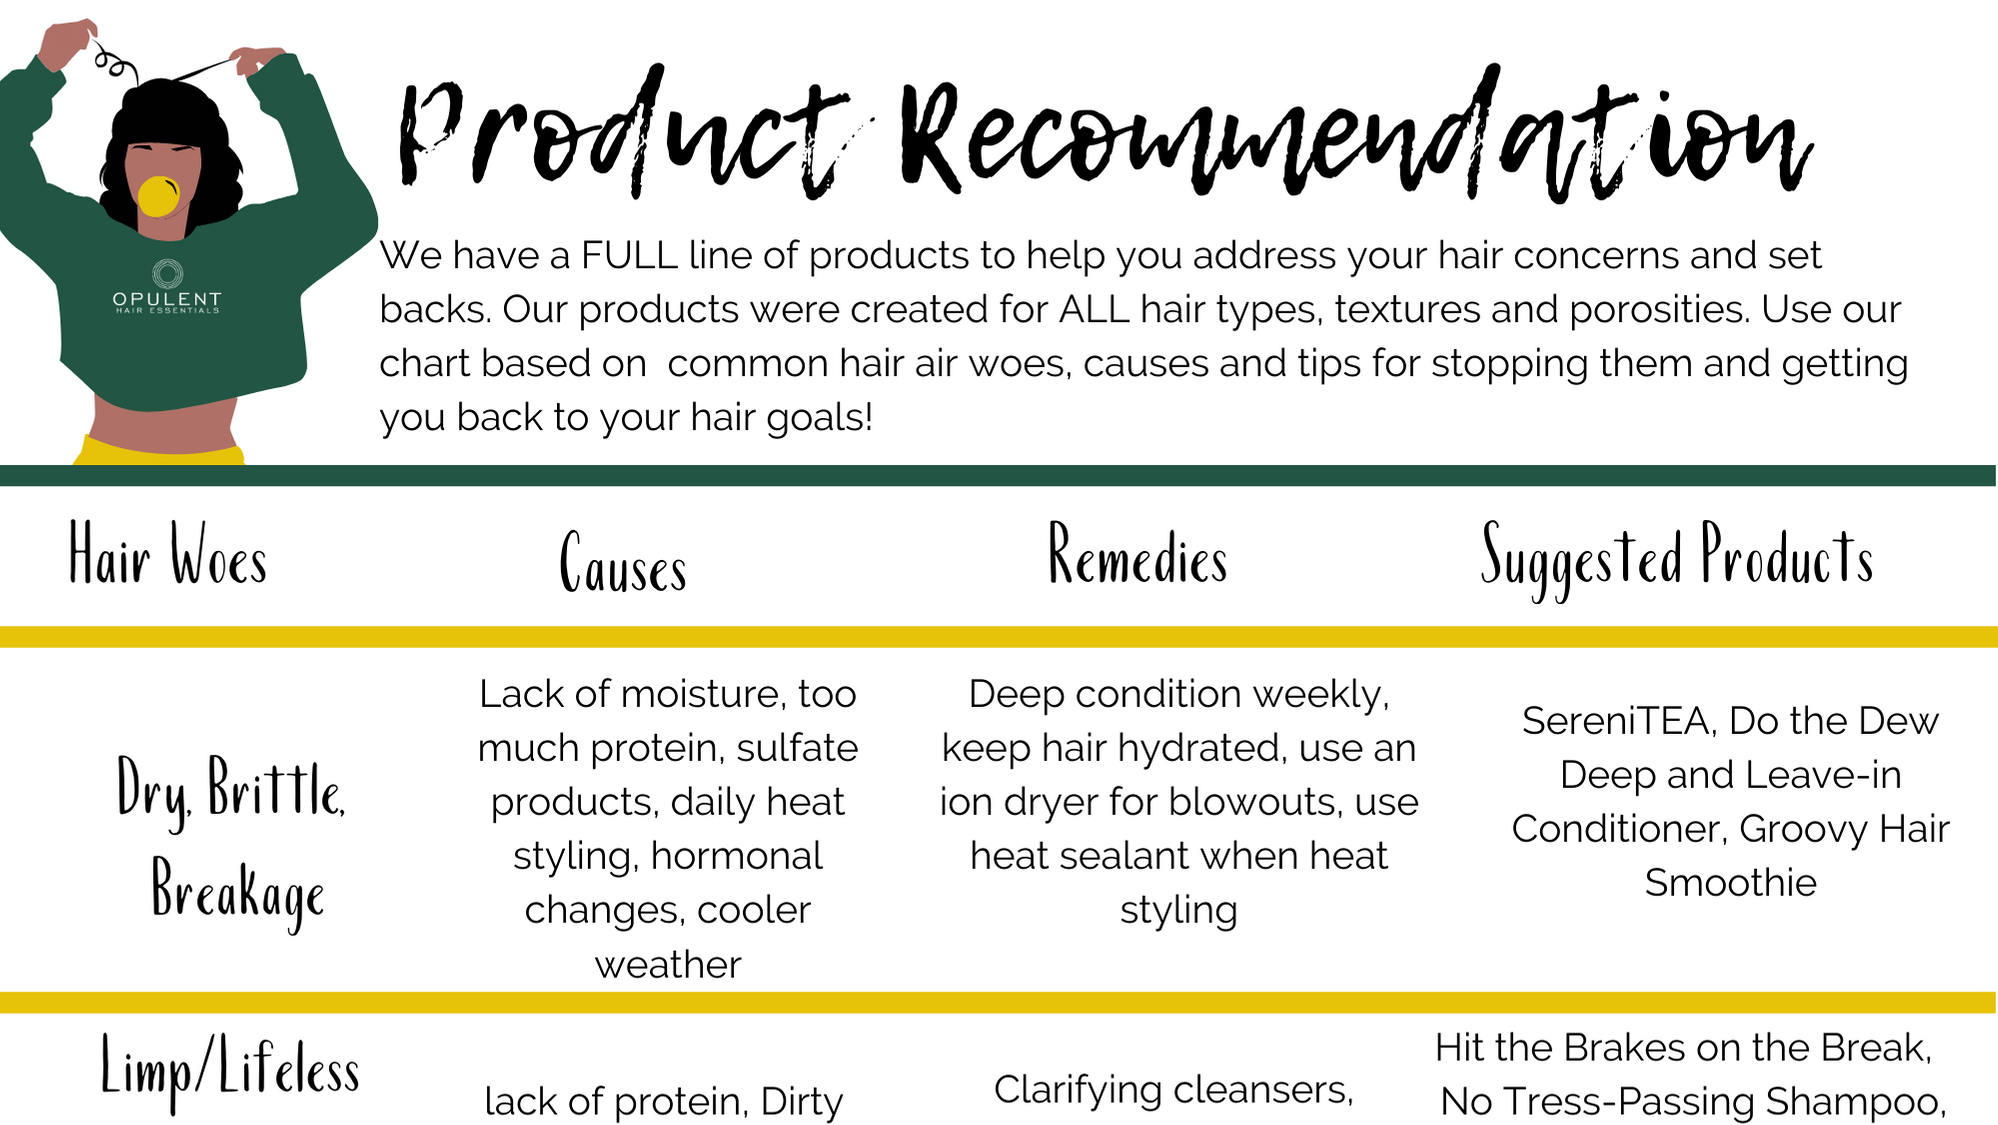 We have a FULL line of products to help you address your hair concerns and set backs. Our products were created for ALL hair types, textures and porosities. Use our chart based on  common hair air woes, causes and tips for stopping them and getting you back to your hair goals!